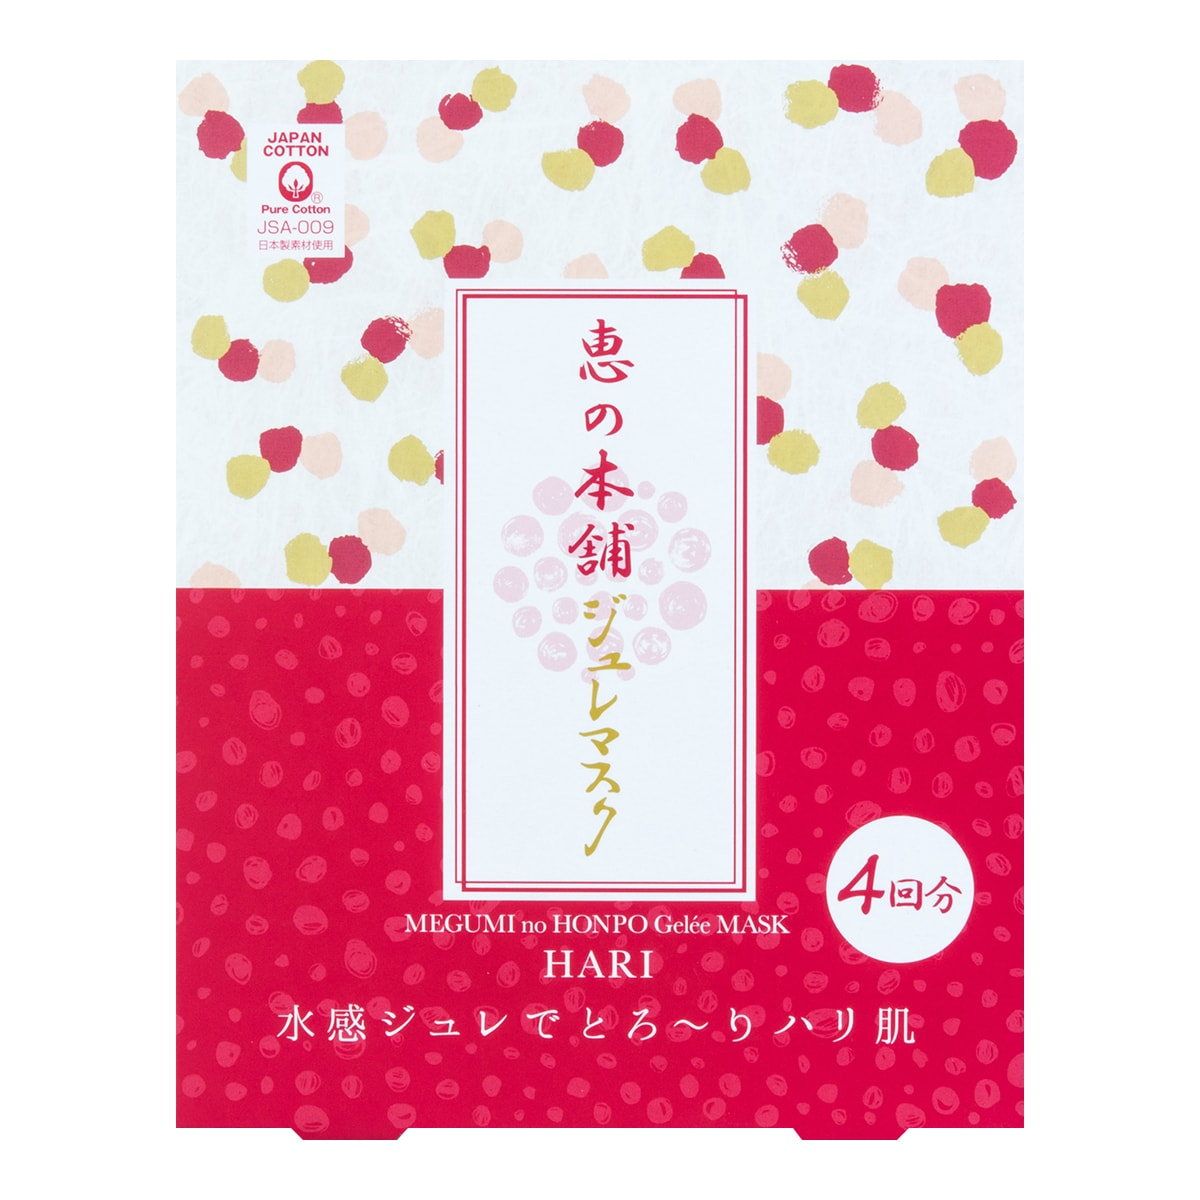 MEGUMI NO HONPO Enrich Jelly Mask 4 Sheets